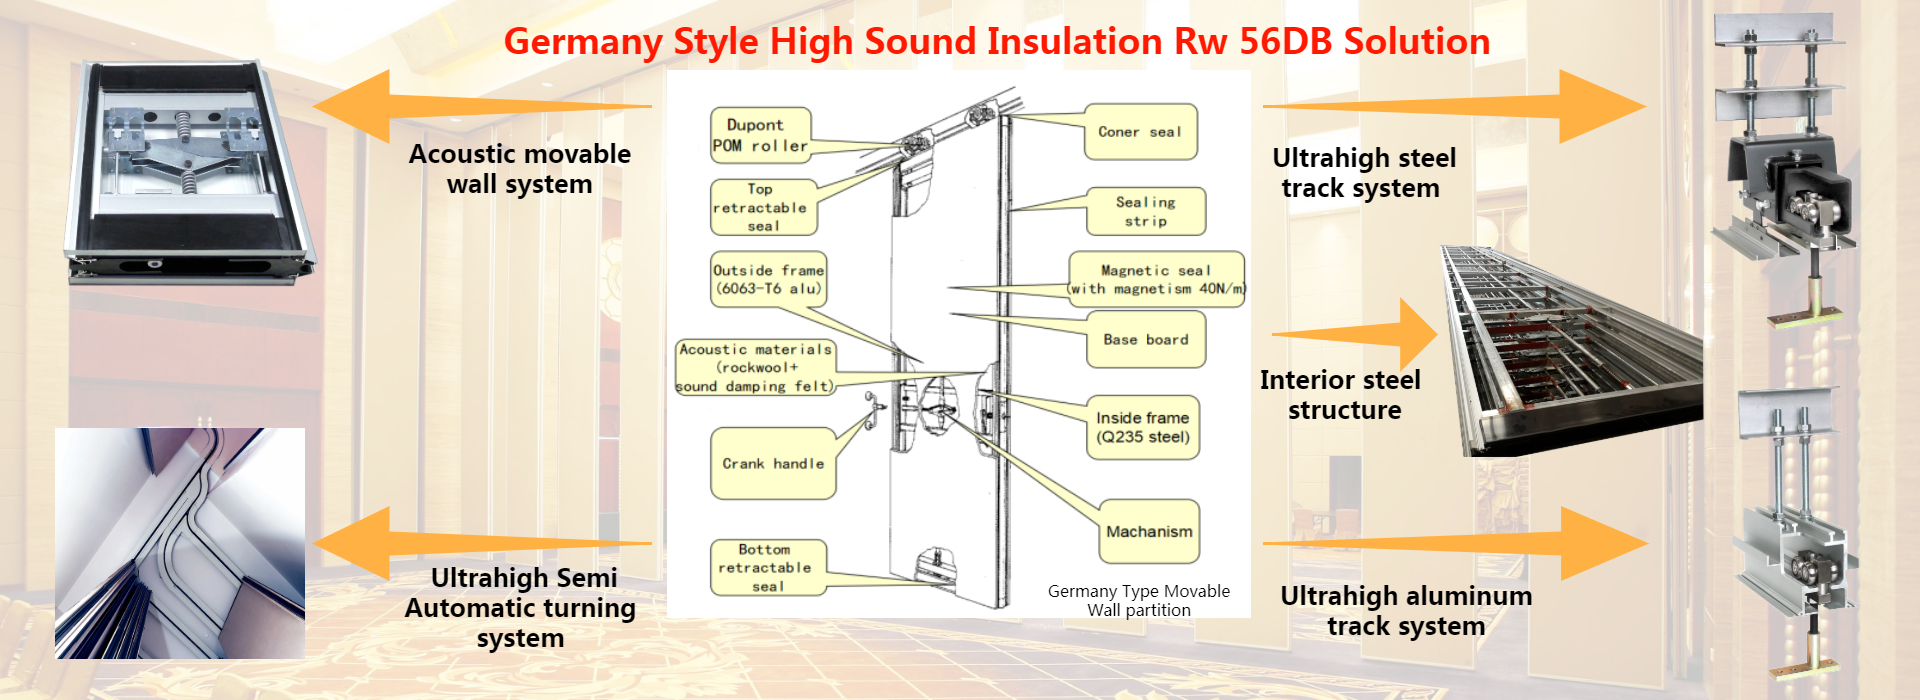 Germany style high sound insulation Rw 56DB Solution